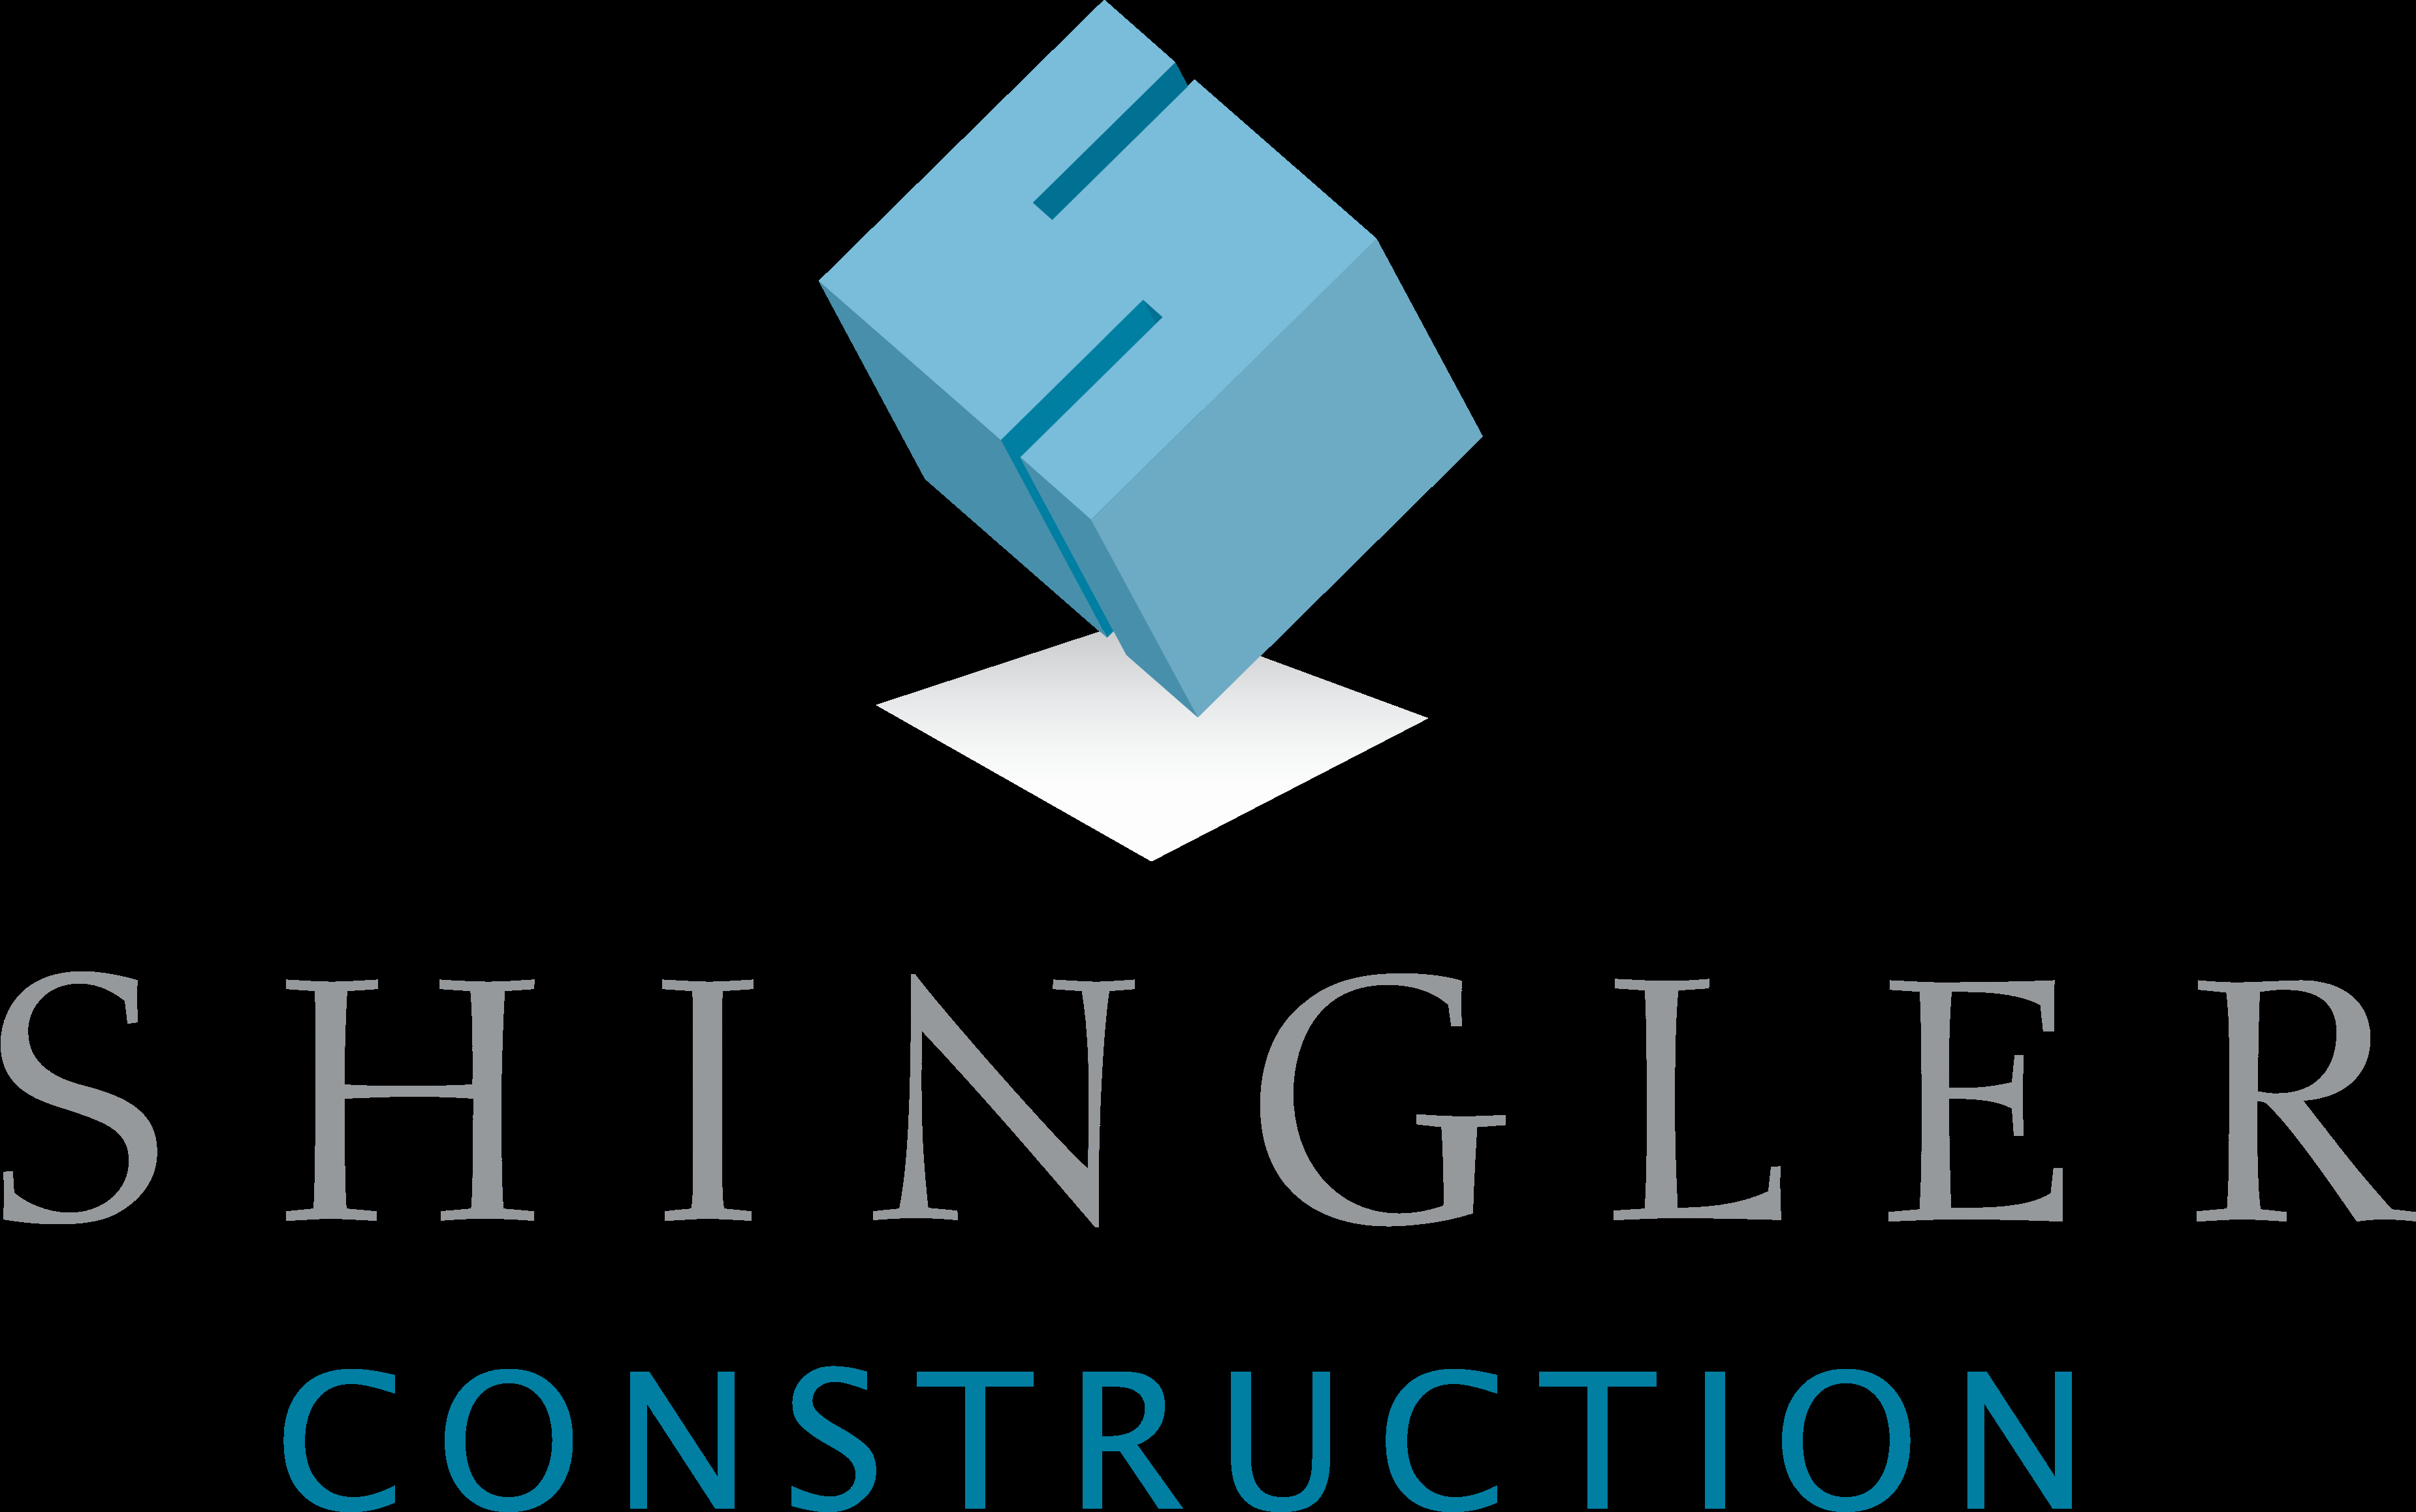 Construction Logos Free Download Awesome Shingler Construction – Logos Download